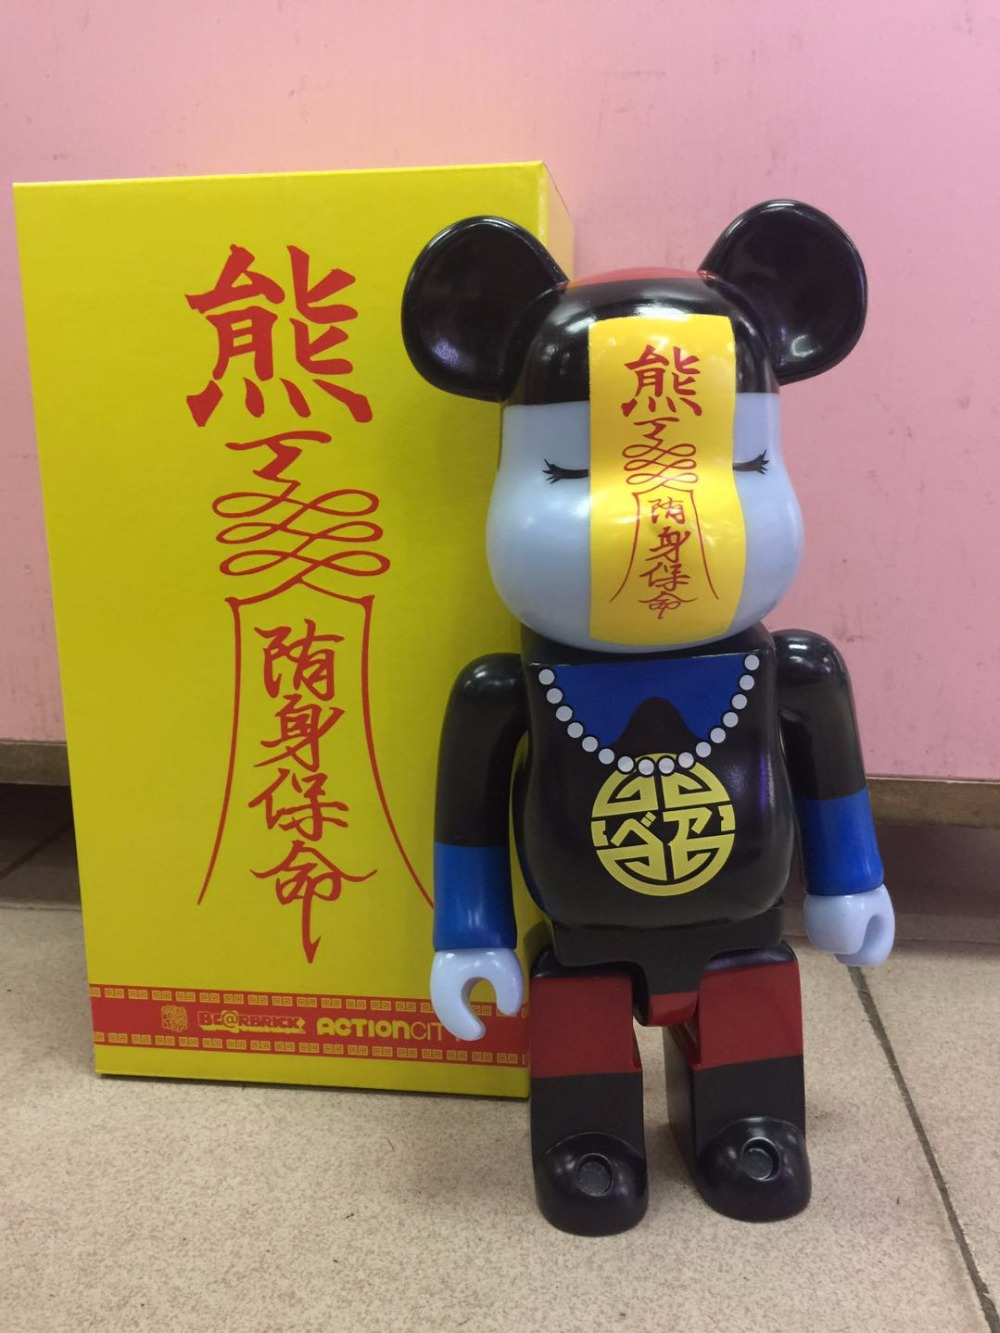 New 28CM BEARBRICK 400% HORROR JIANG SHI GLOW Fashion Toy PVC Action Figure Collectible Model Toy Decoration new hot christmas gift 21inch 52cm bearbrick be rbrick fashion toy pvc action figure collectible model toy decoration